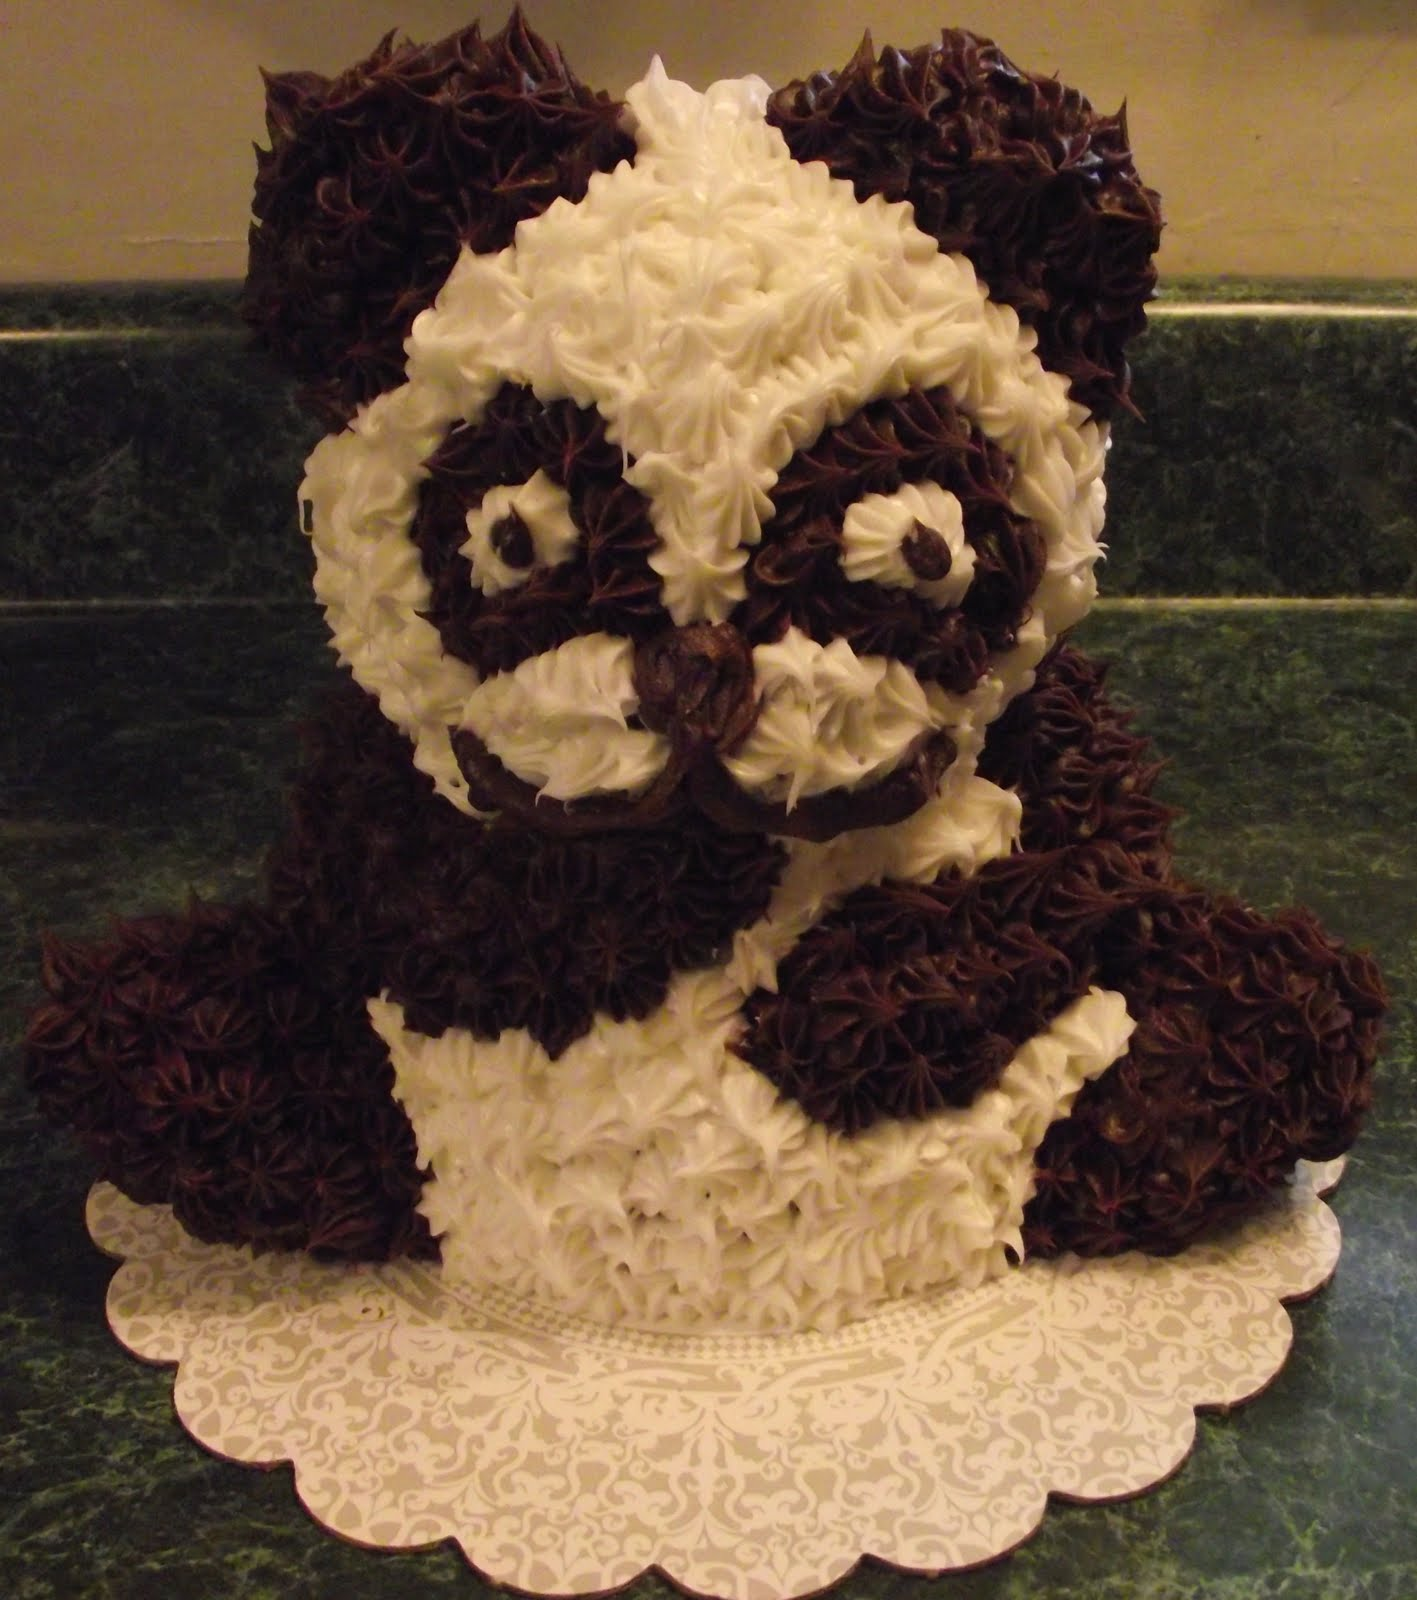 Pin panda bear face template picture cake on pinterest for Panda bear cake template